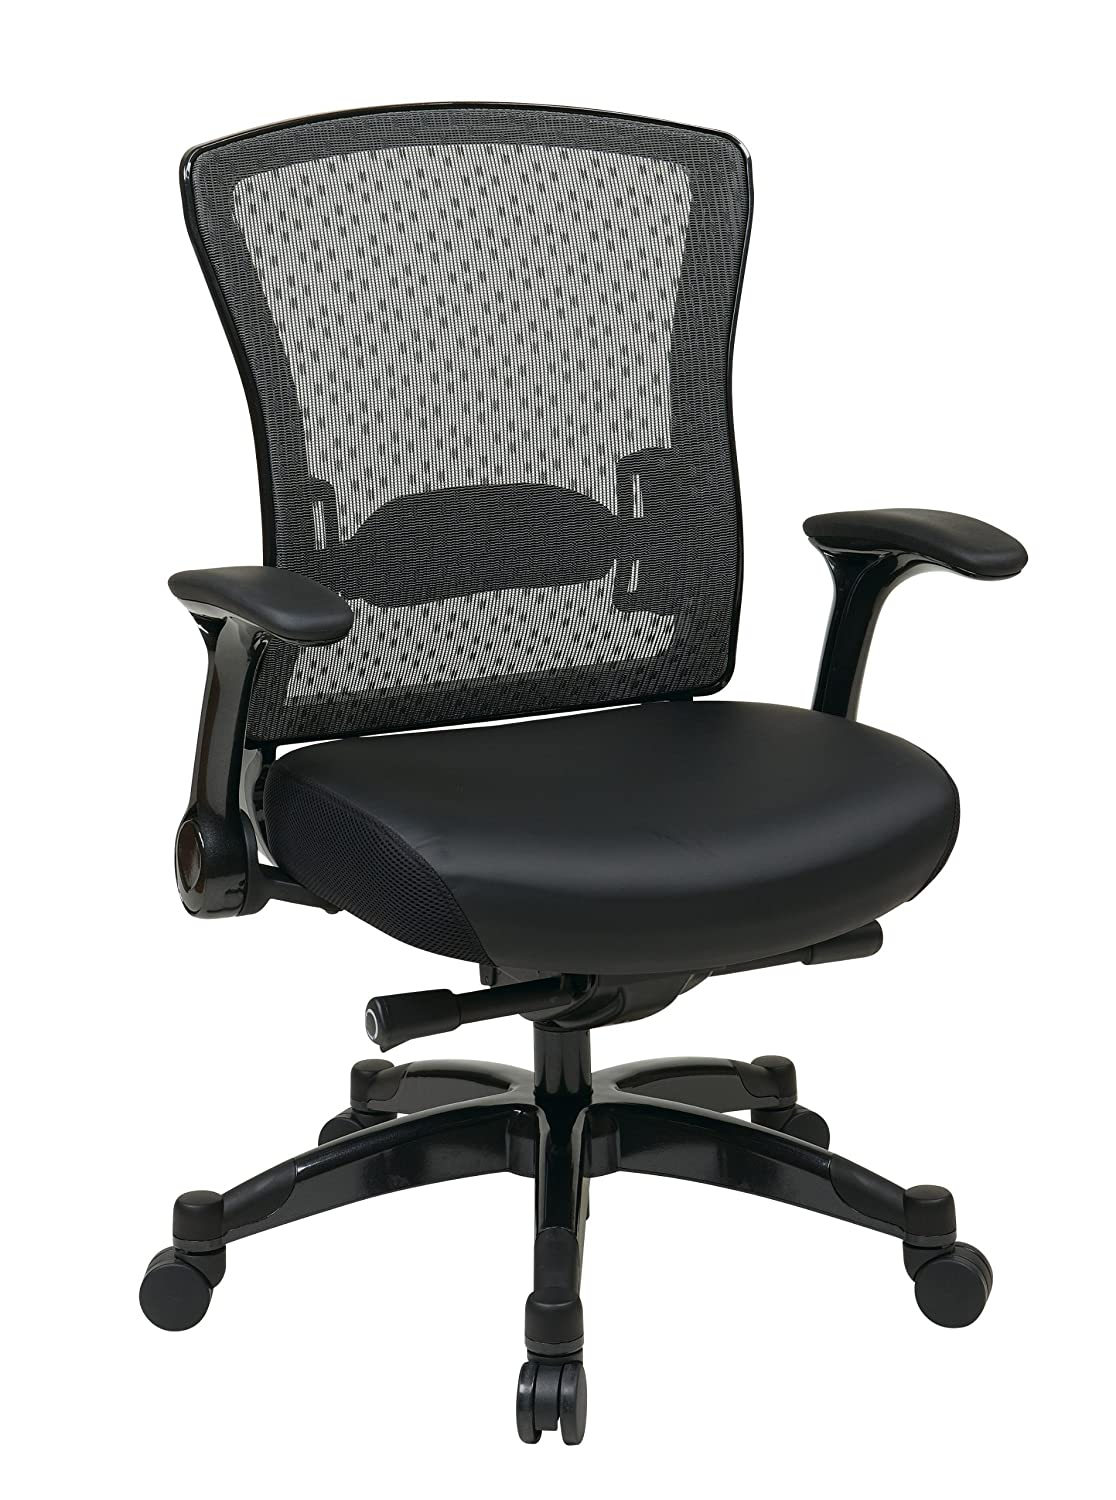 Fabulous SPACE Seating Professional R SpaceGrid Back Chair with Padded Memory Foam Eco Leather Seat Gunmetal Finish Adjustable Managers Chair